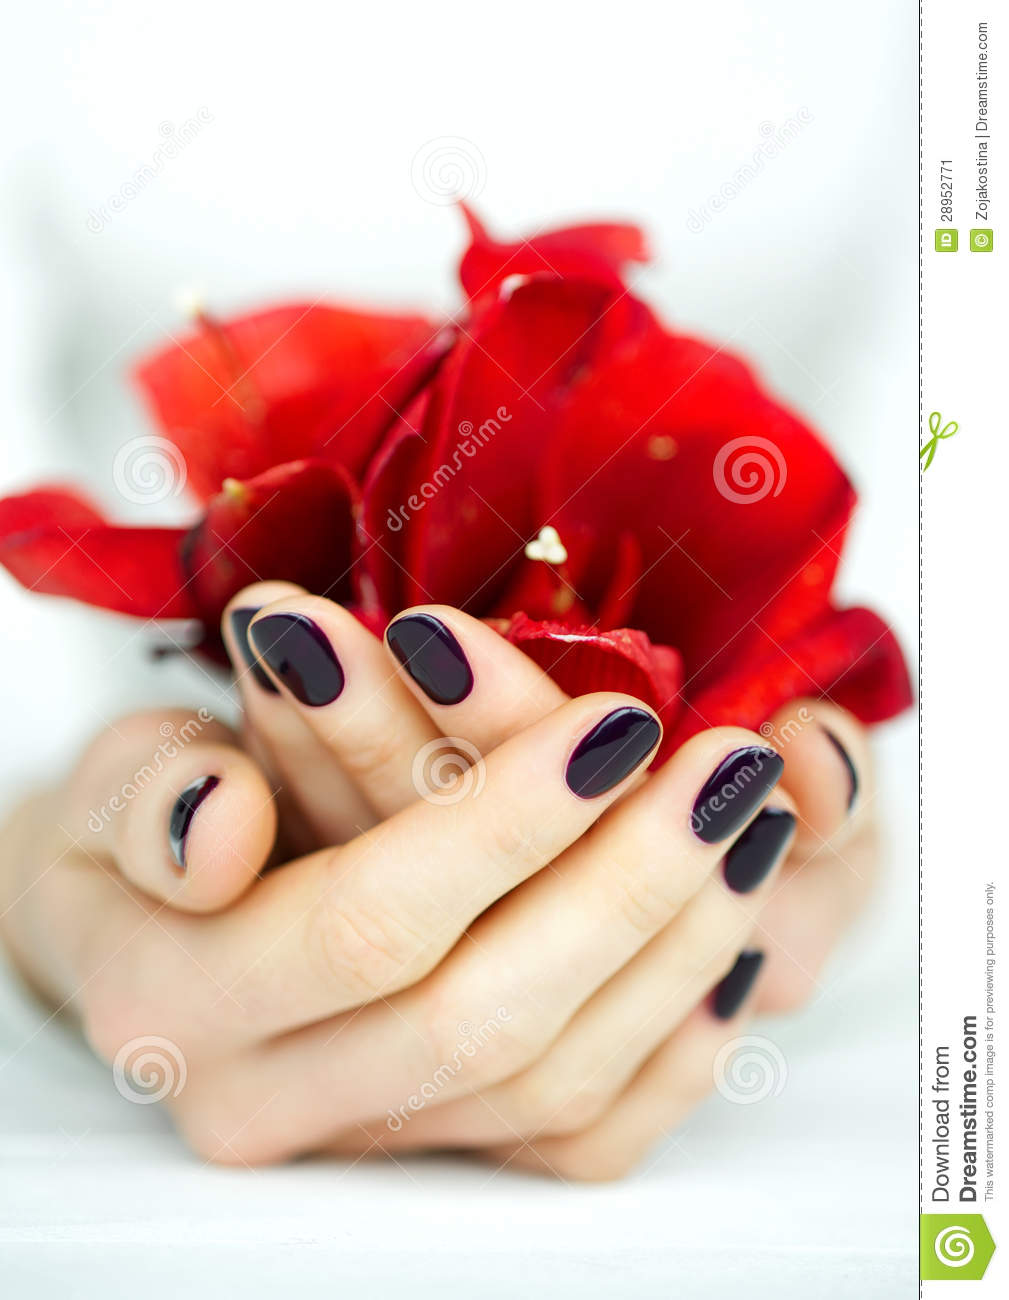 Cupped hands with manicure holding red flower